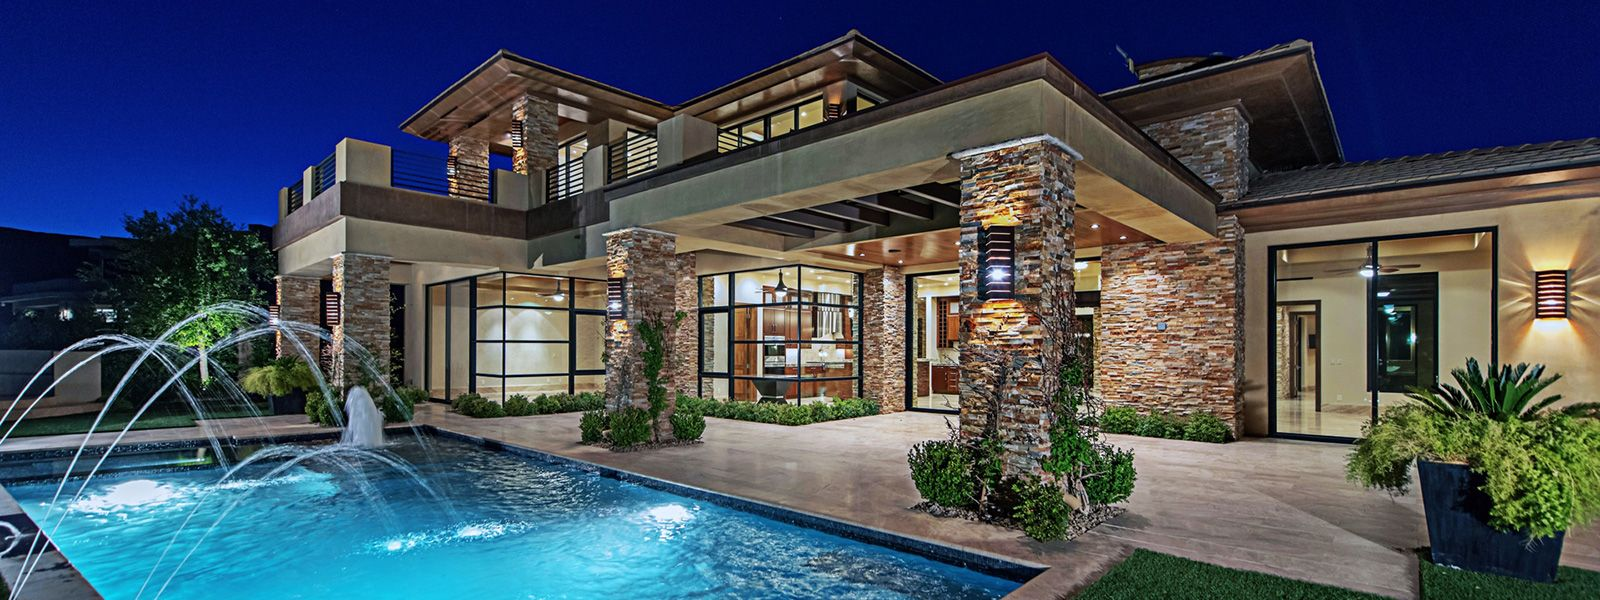 Take A Look To 100 Luxury Homes And Get Inspired To Improve Your Luxury Lifestyle Luxurysafes Luxury Luxuryh Luxury Homes Las Vegas Luxury Luxury Penthouse